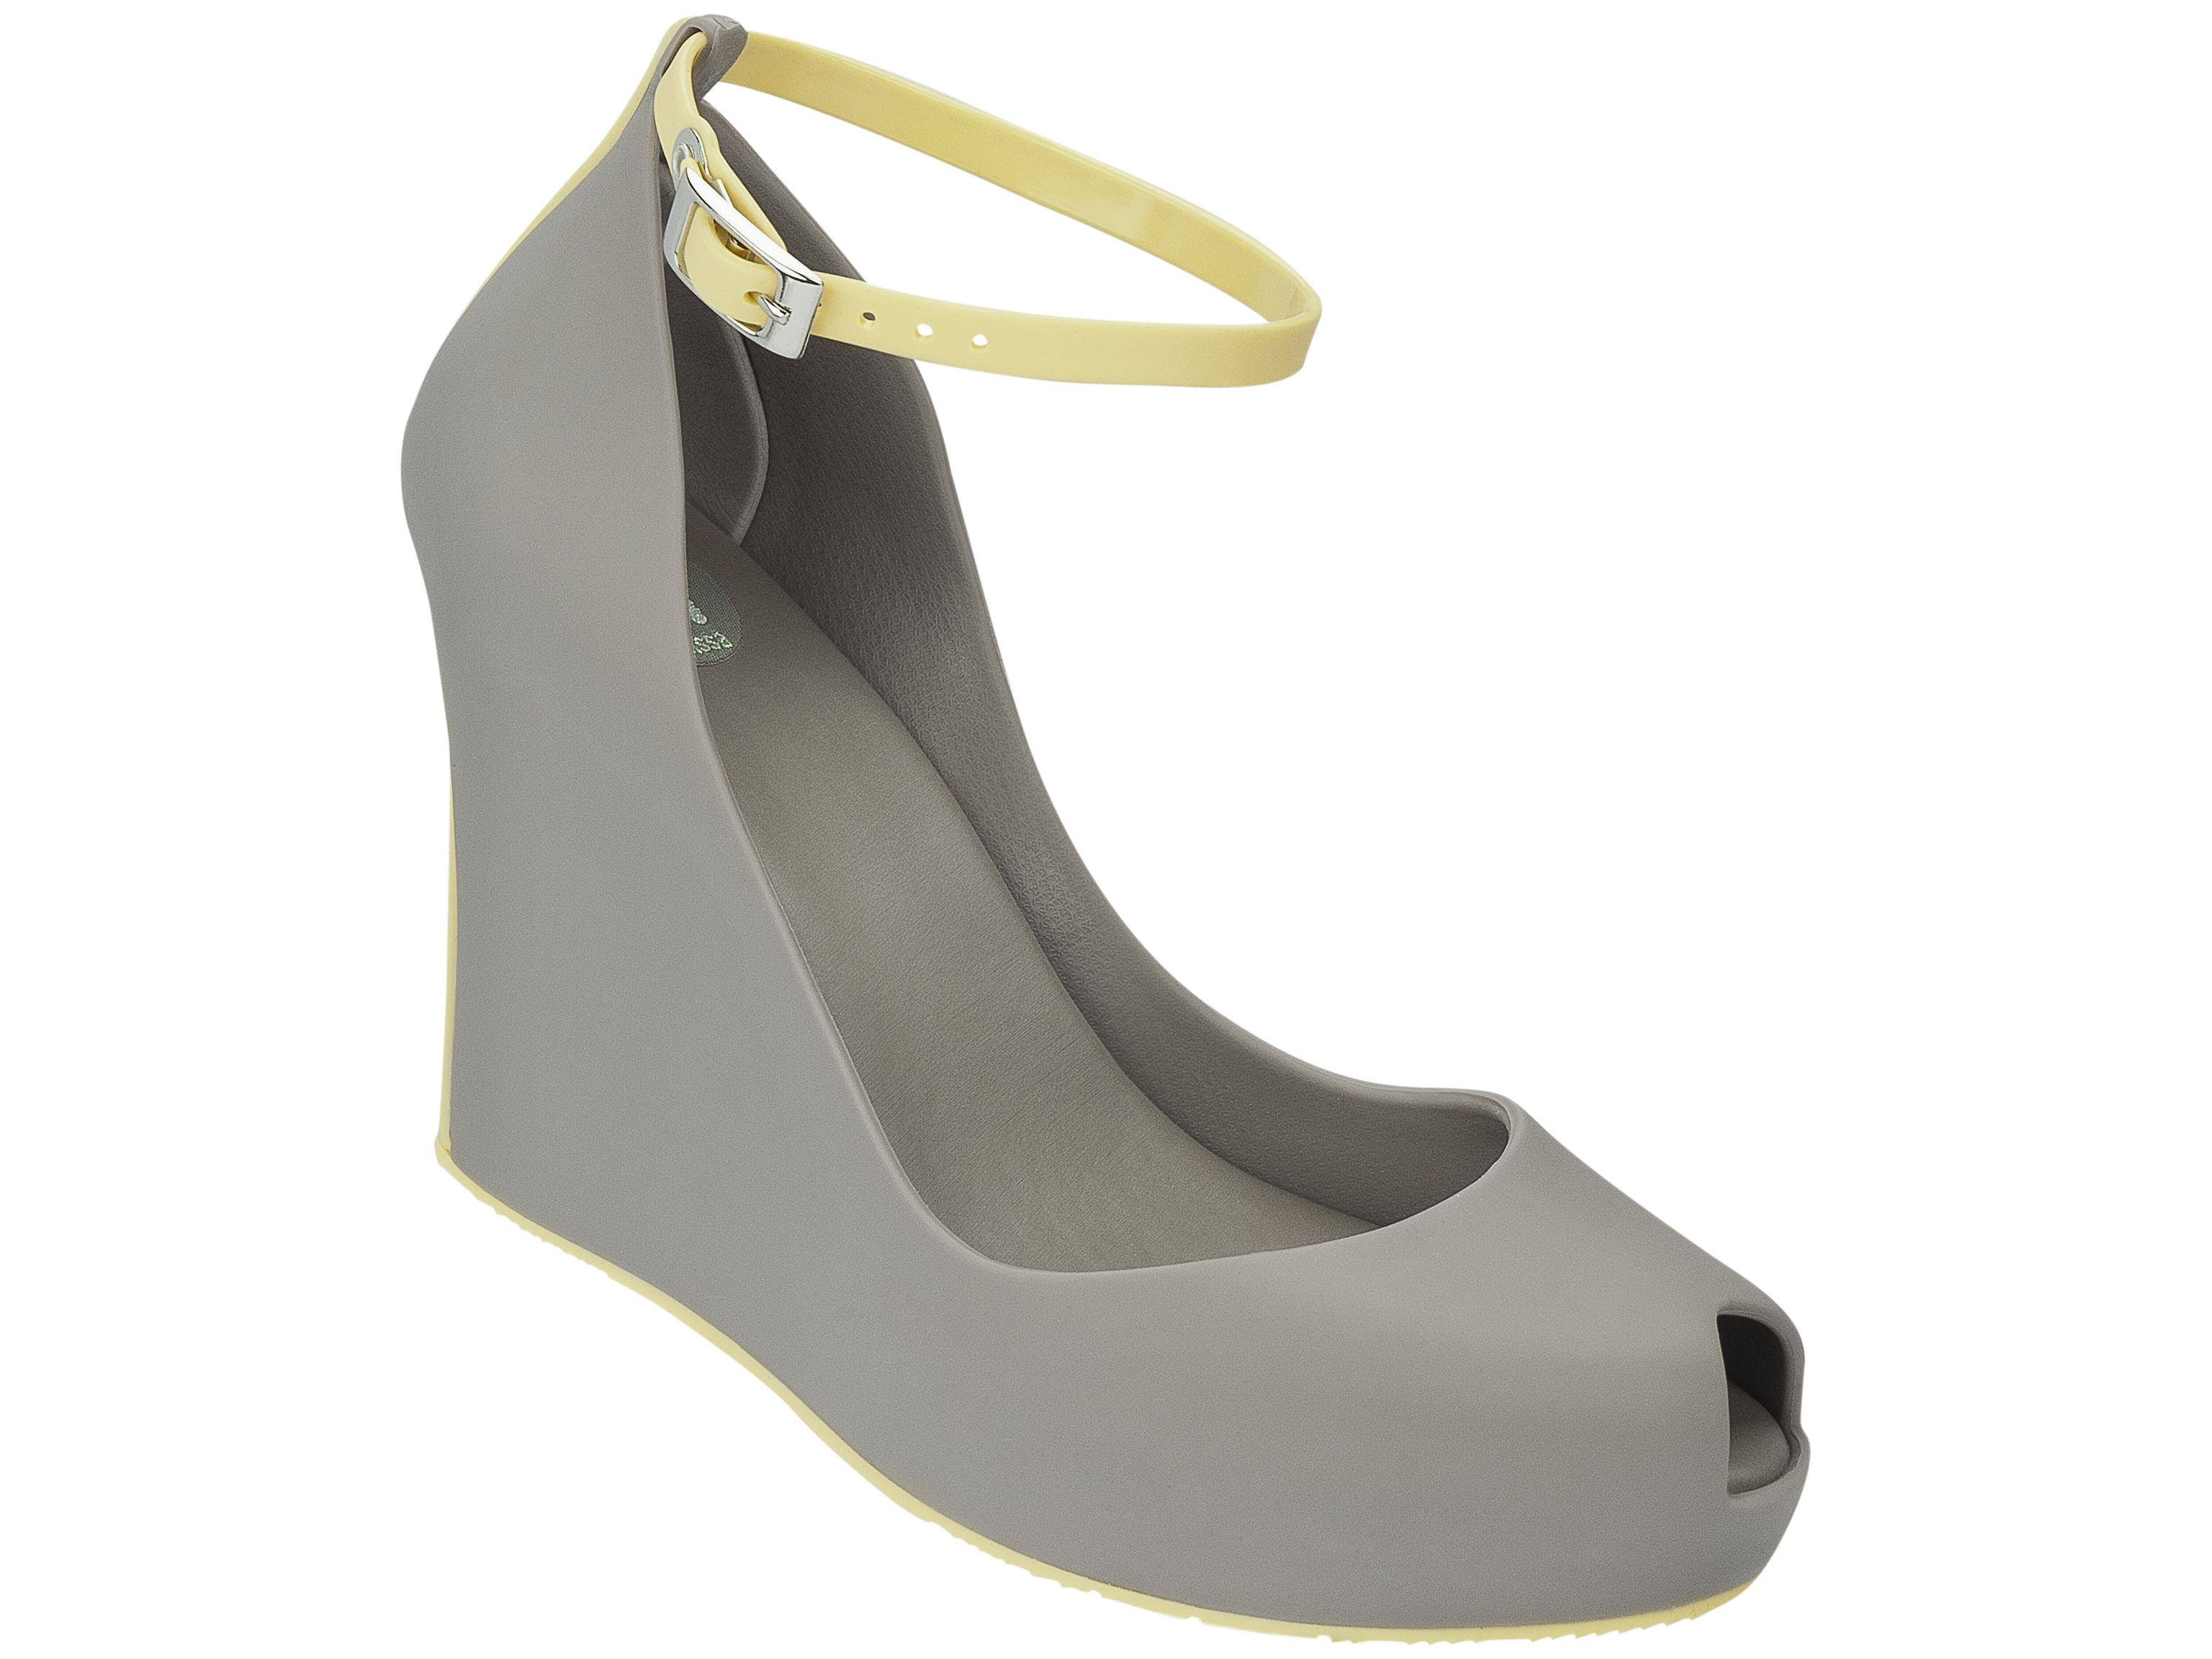 Patchouli - grey/yellow from Melissa Shoes at :: convert style :: women's,  men's and kids socially conscious apparel, accessories & shoes